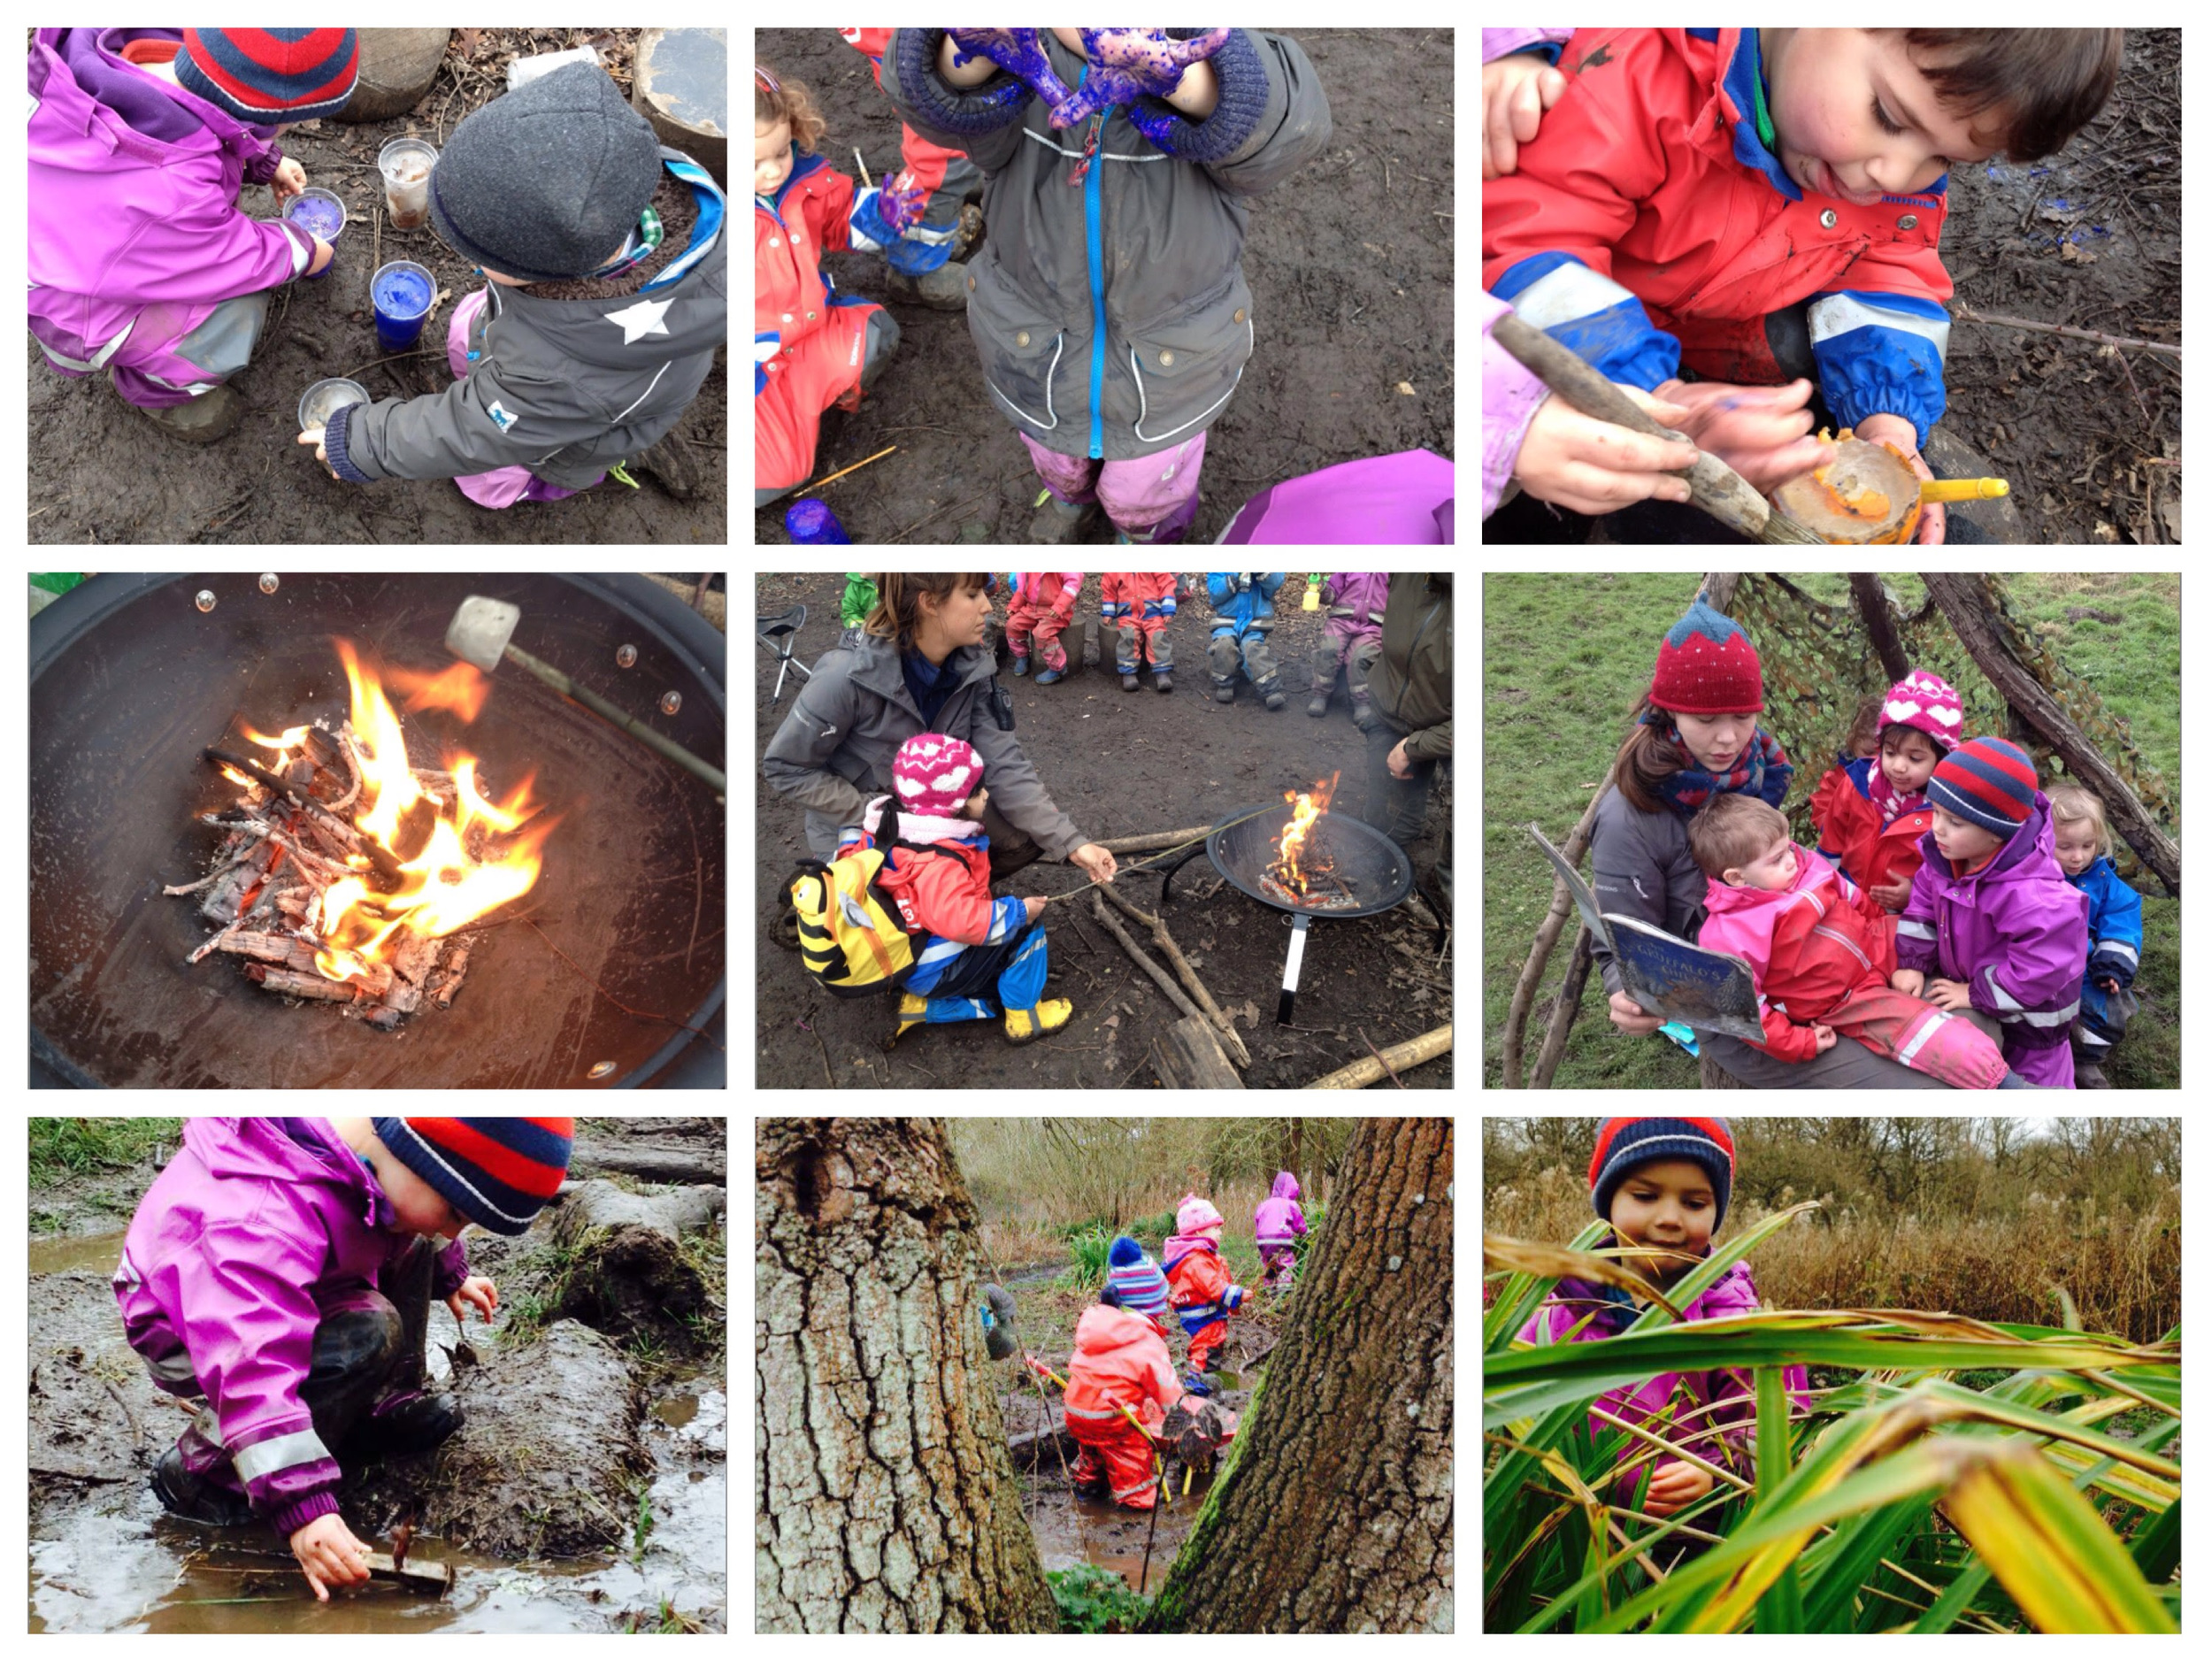 Campfire, play and stories under the trees in the forest